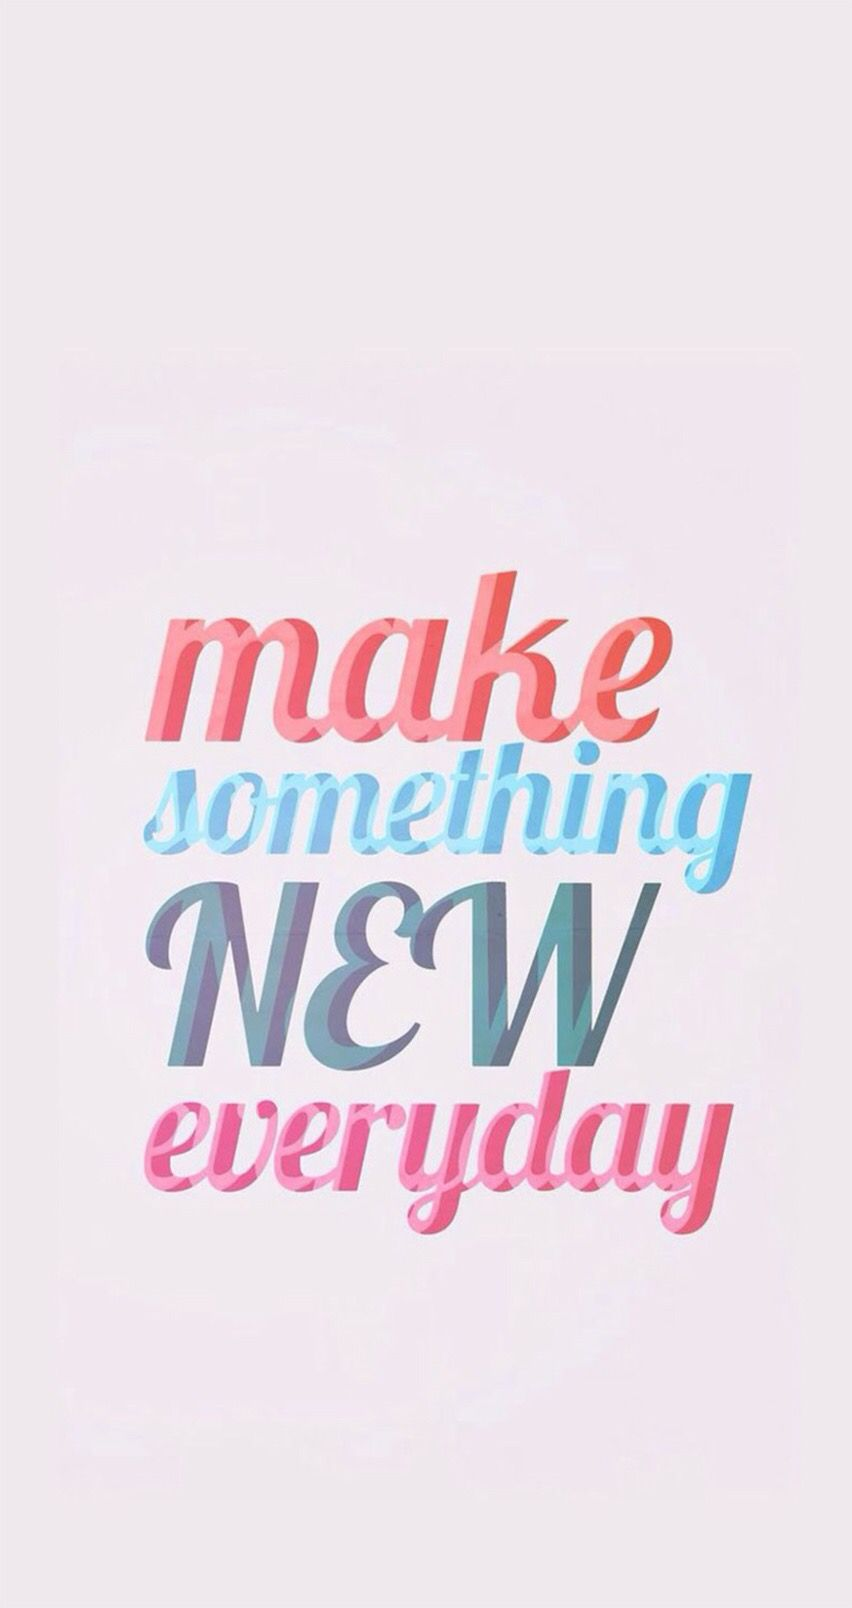 Make something good everyday iphone wallpapers quotes apple iphone make something good everyday iphone wallpapers quotes apple iphone 5s hd wallpapers words quotes positivehappy quotespositive thoughtshd thecheapjerseys Choice Image